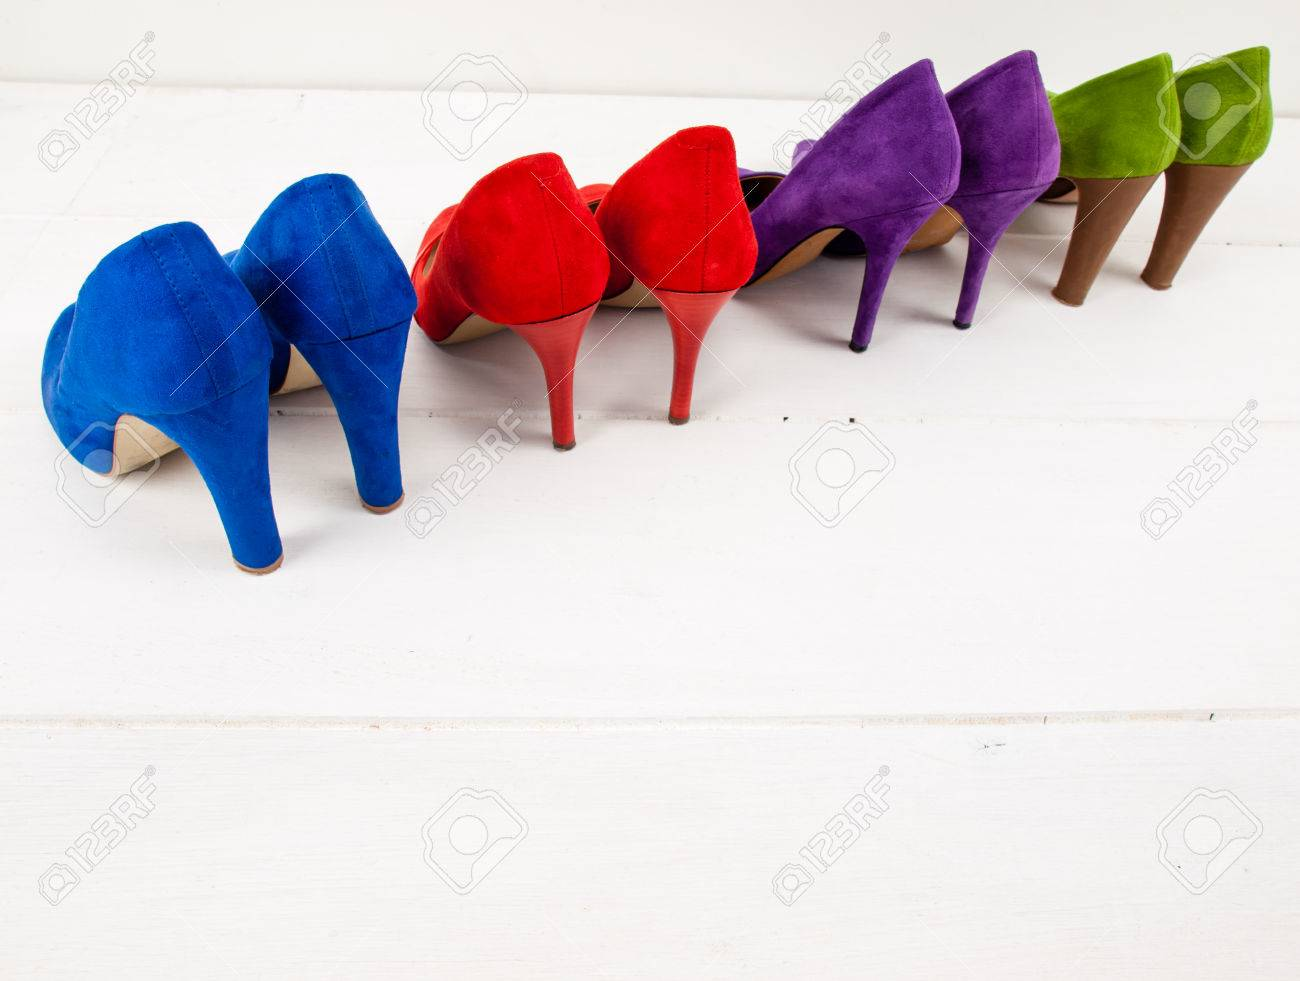 c3d5379ef2 four pairs colourful suede stiletto shoes lined up on the diagonal on a  white floor infront